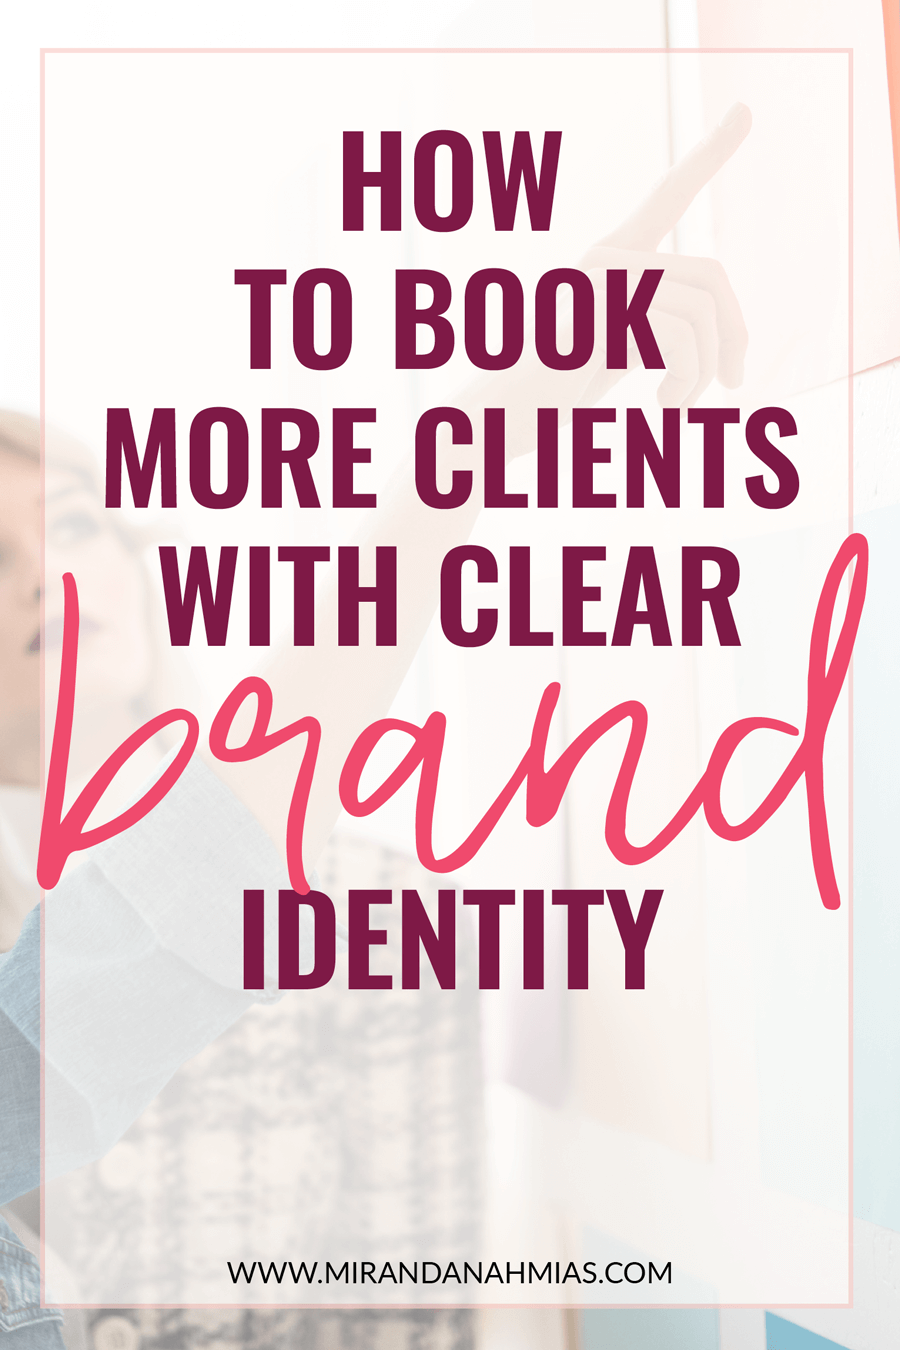 How to Book More Clients With Clear Brand Identity | Miranda Nahmias & Co. Systematic Marketing for Female Online Service Providers